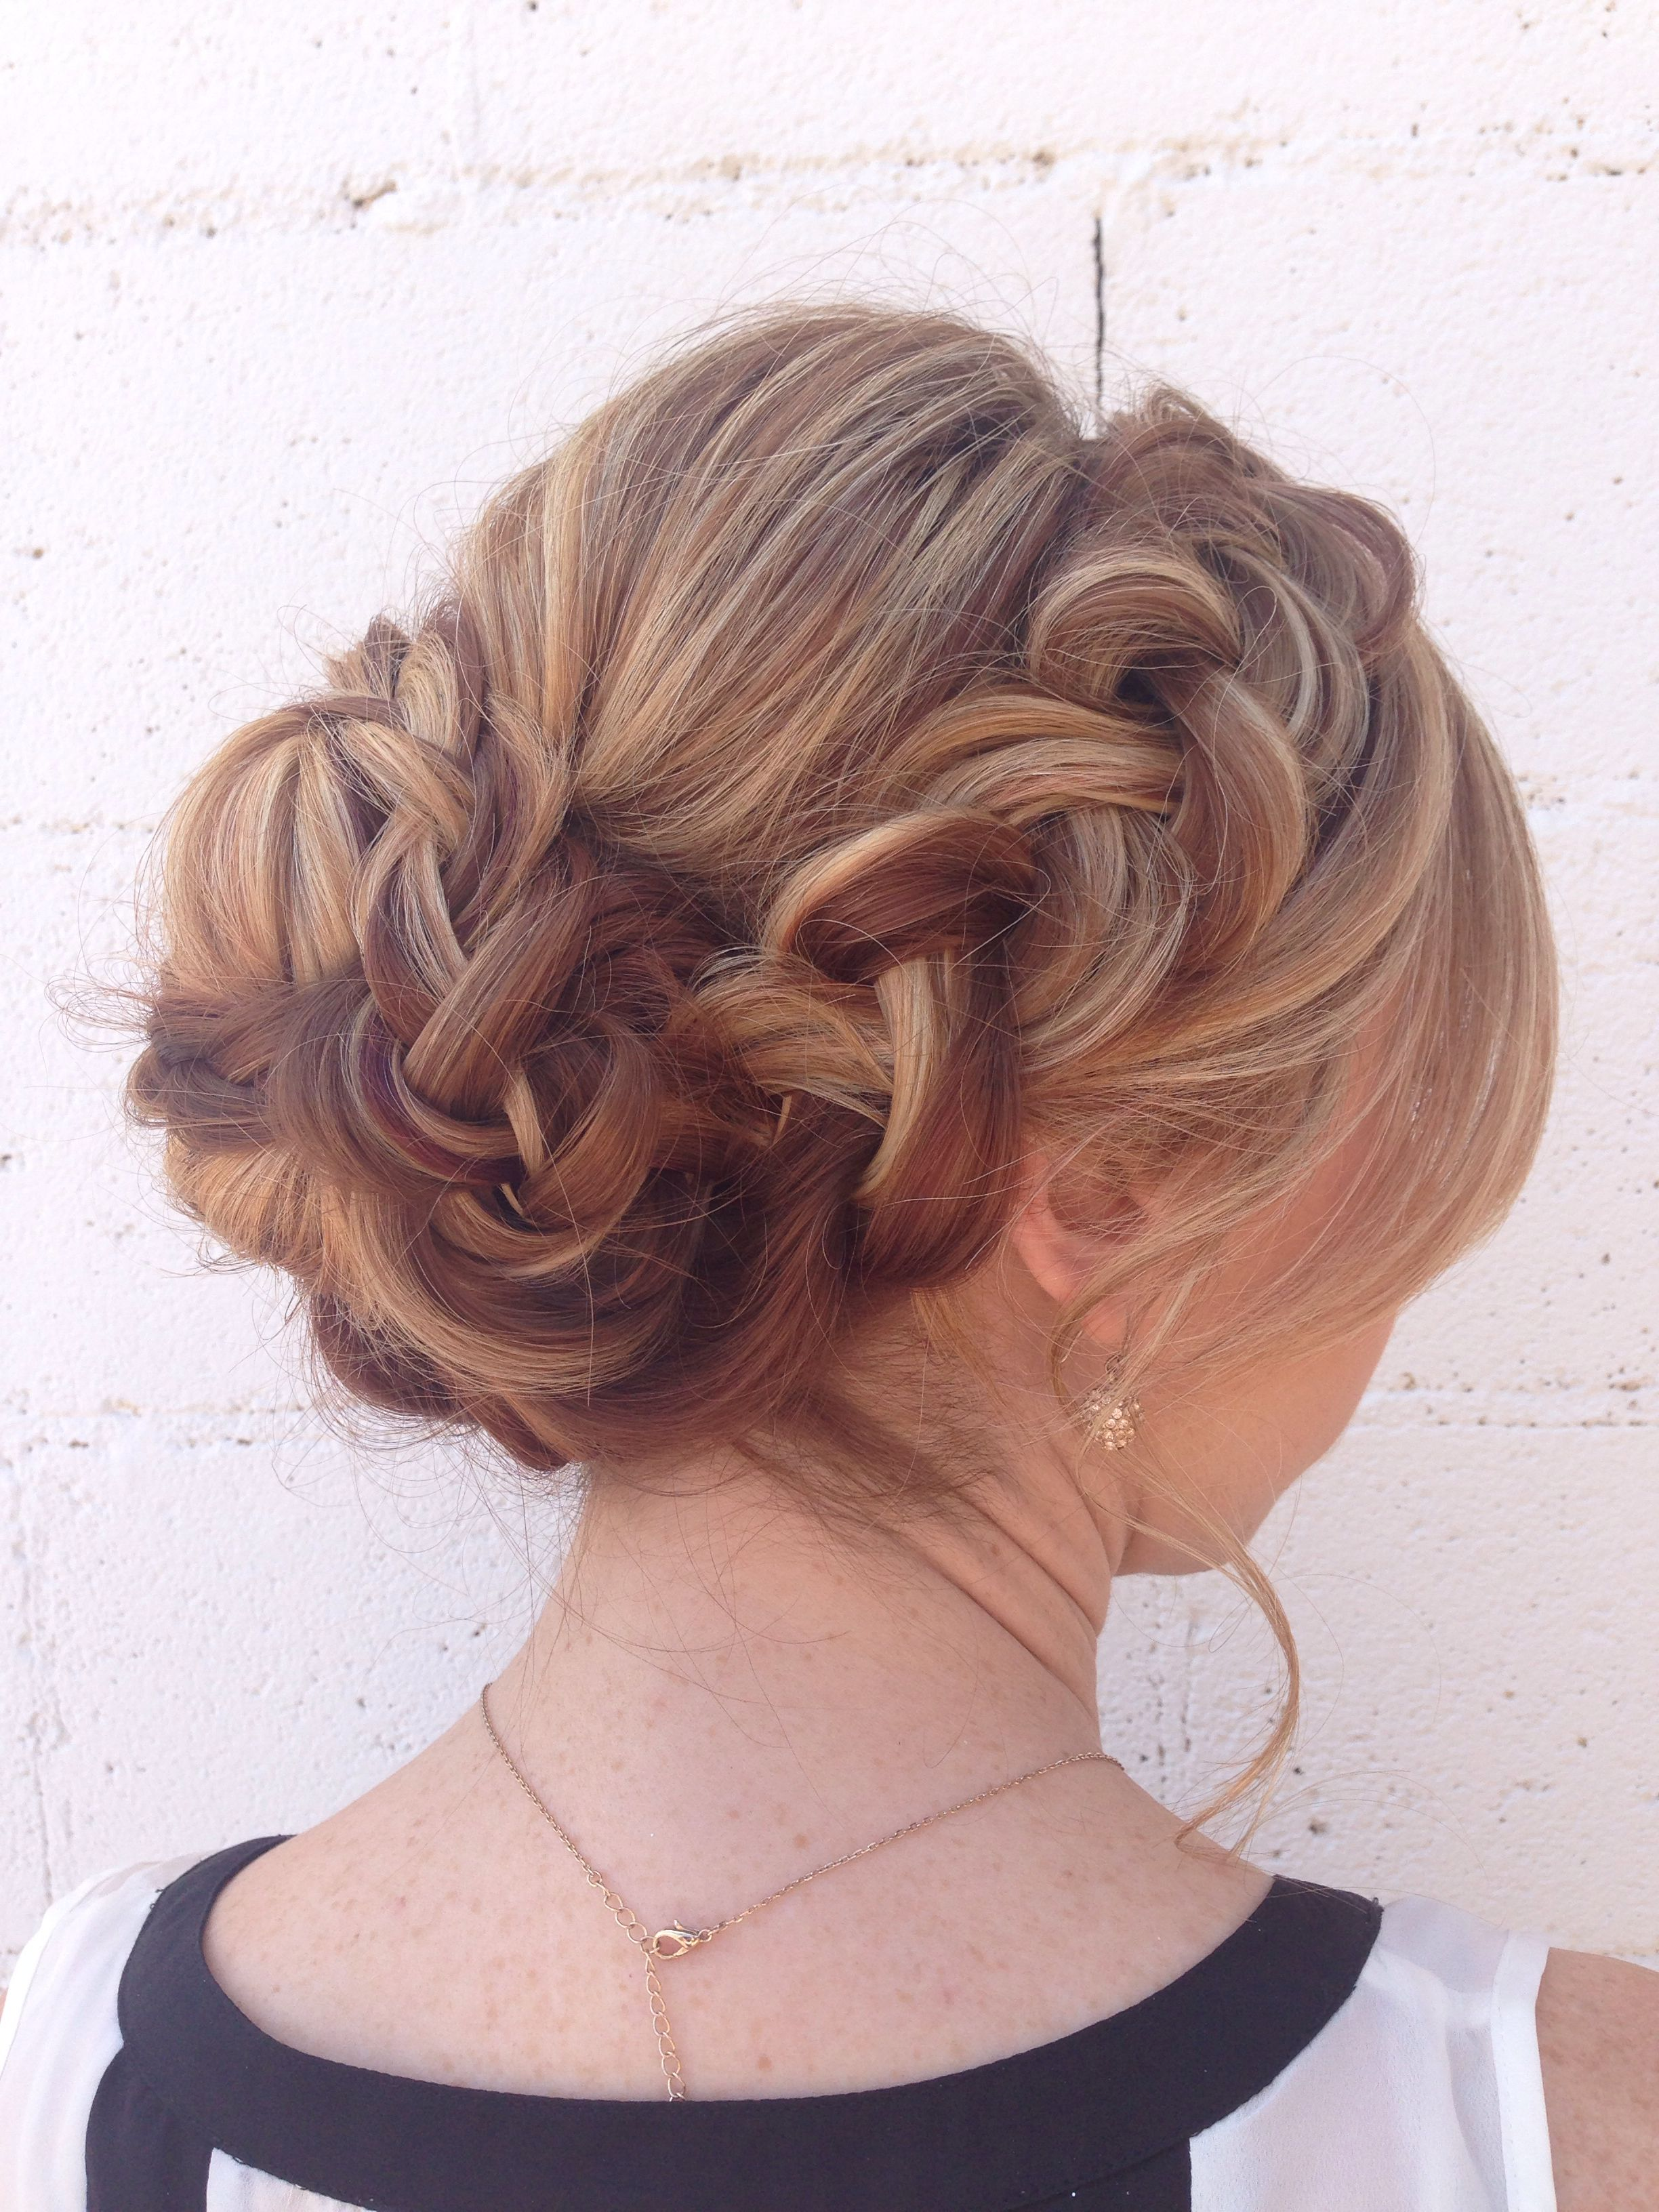 Excellent Soft Braided Updo For Long Thick Hair Hair Pinterest Updo Short Hairstyles Gunalazisus